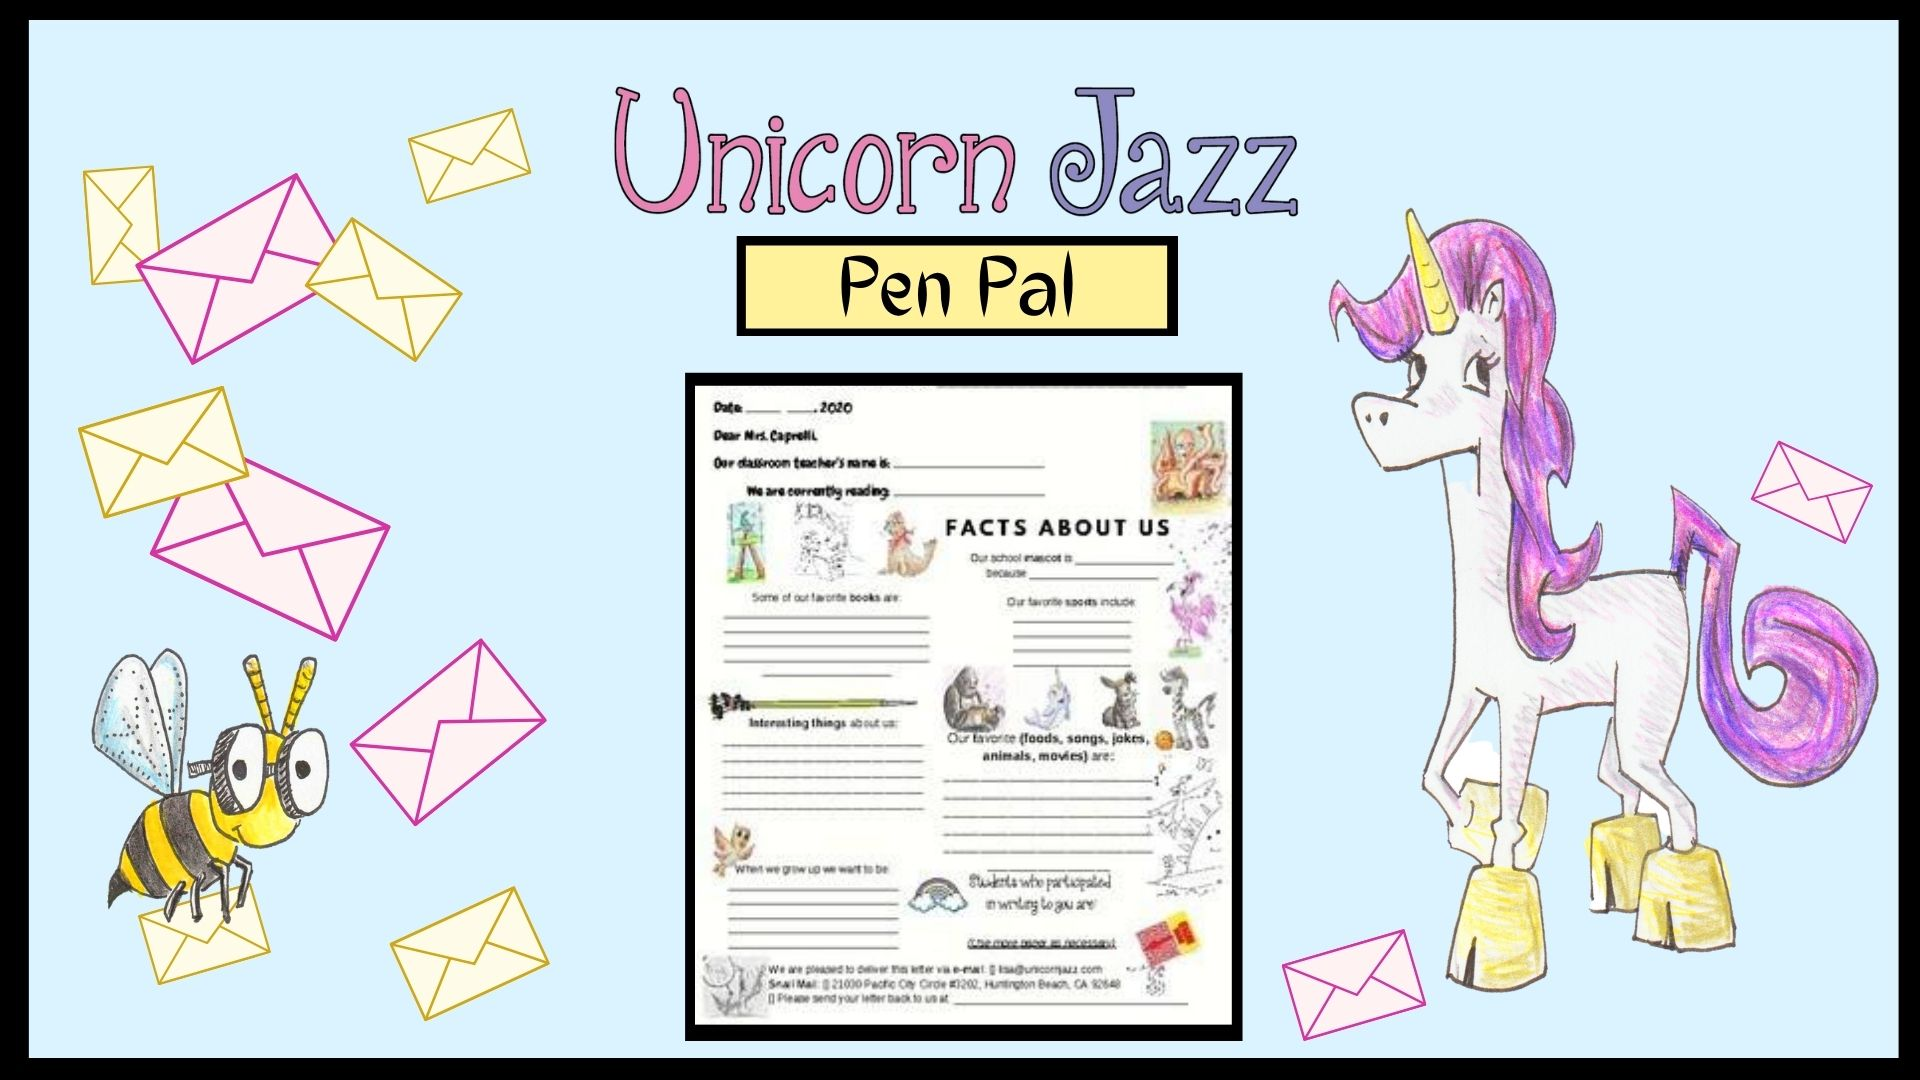 Happiness News Puppet Show Pen Pal Activity for kids